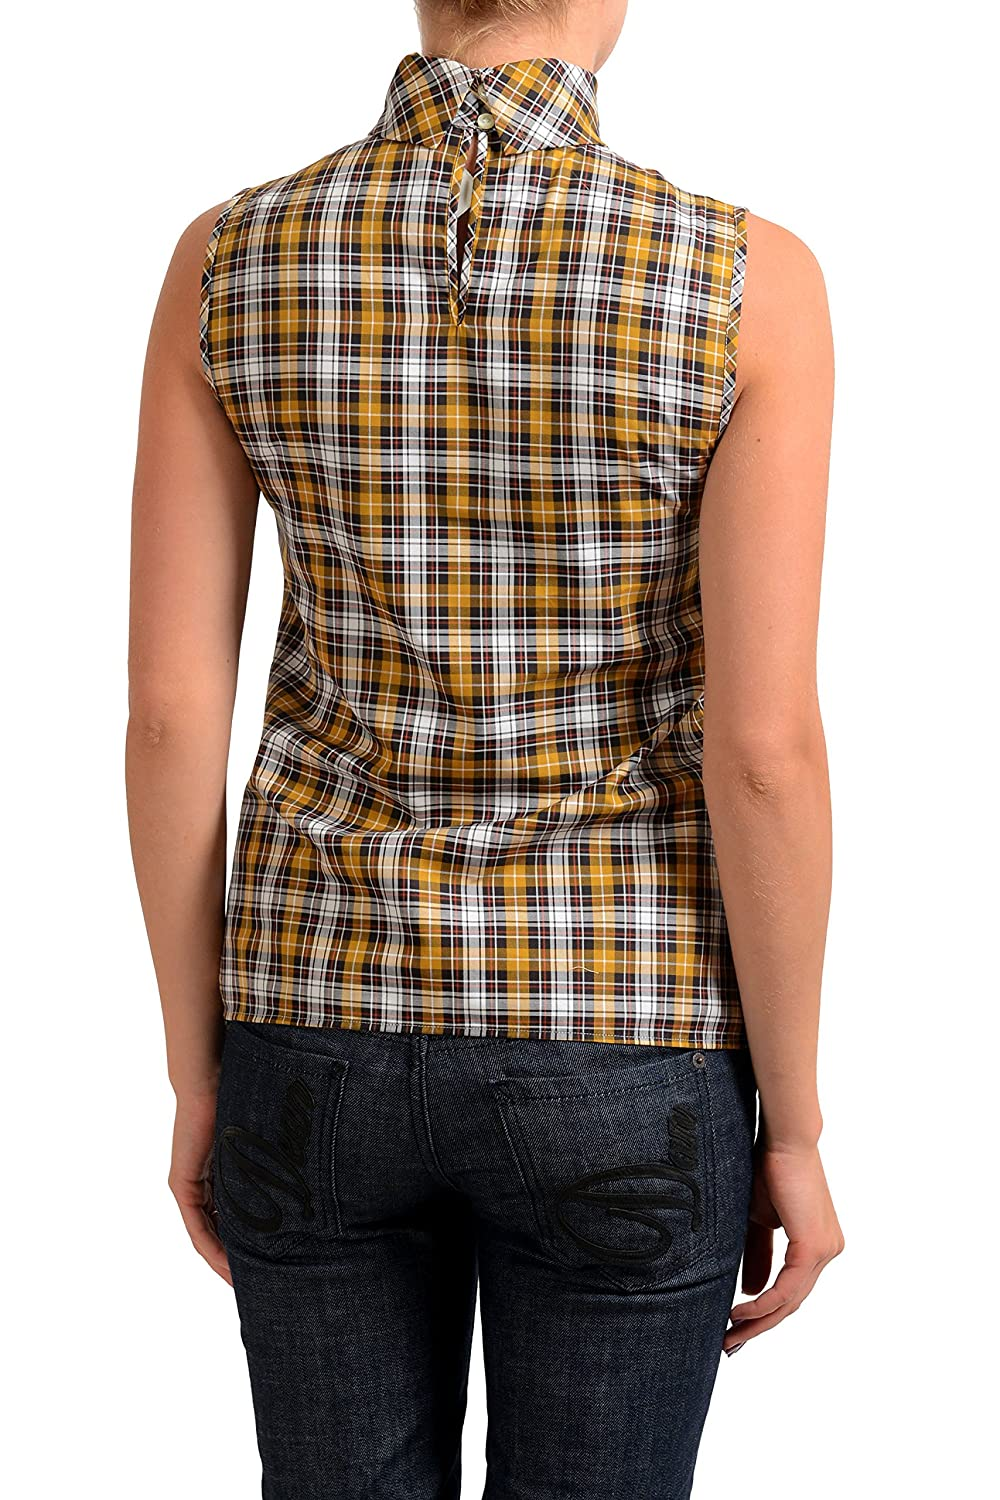 DSQUARED2 Multi-Color Checkered Womens Sleeveless Blouse Top US XS IT 38